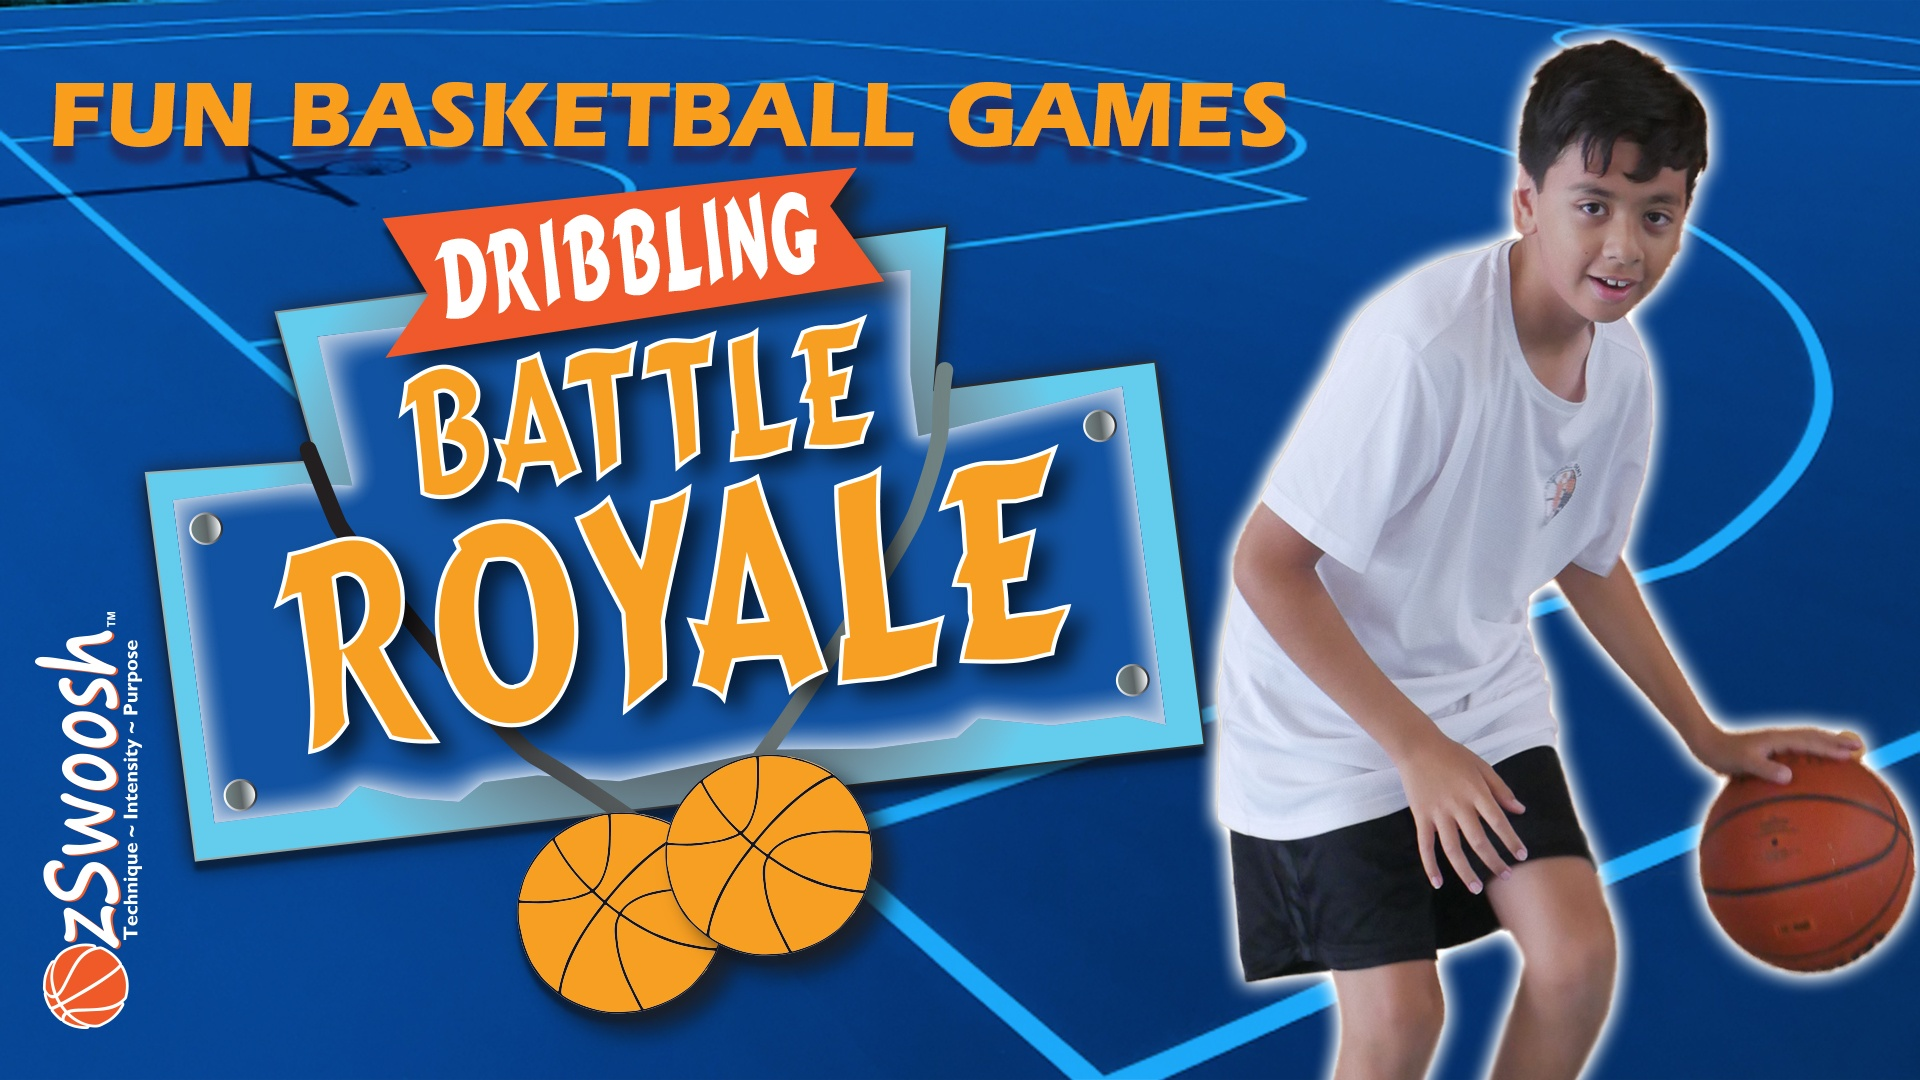 Fun Youth Basketball Drills For Kids - Battle Royale (Dribbling Game)